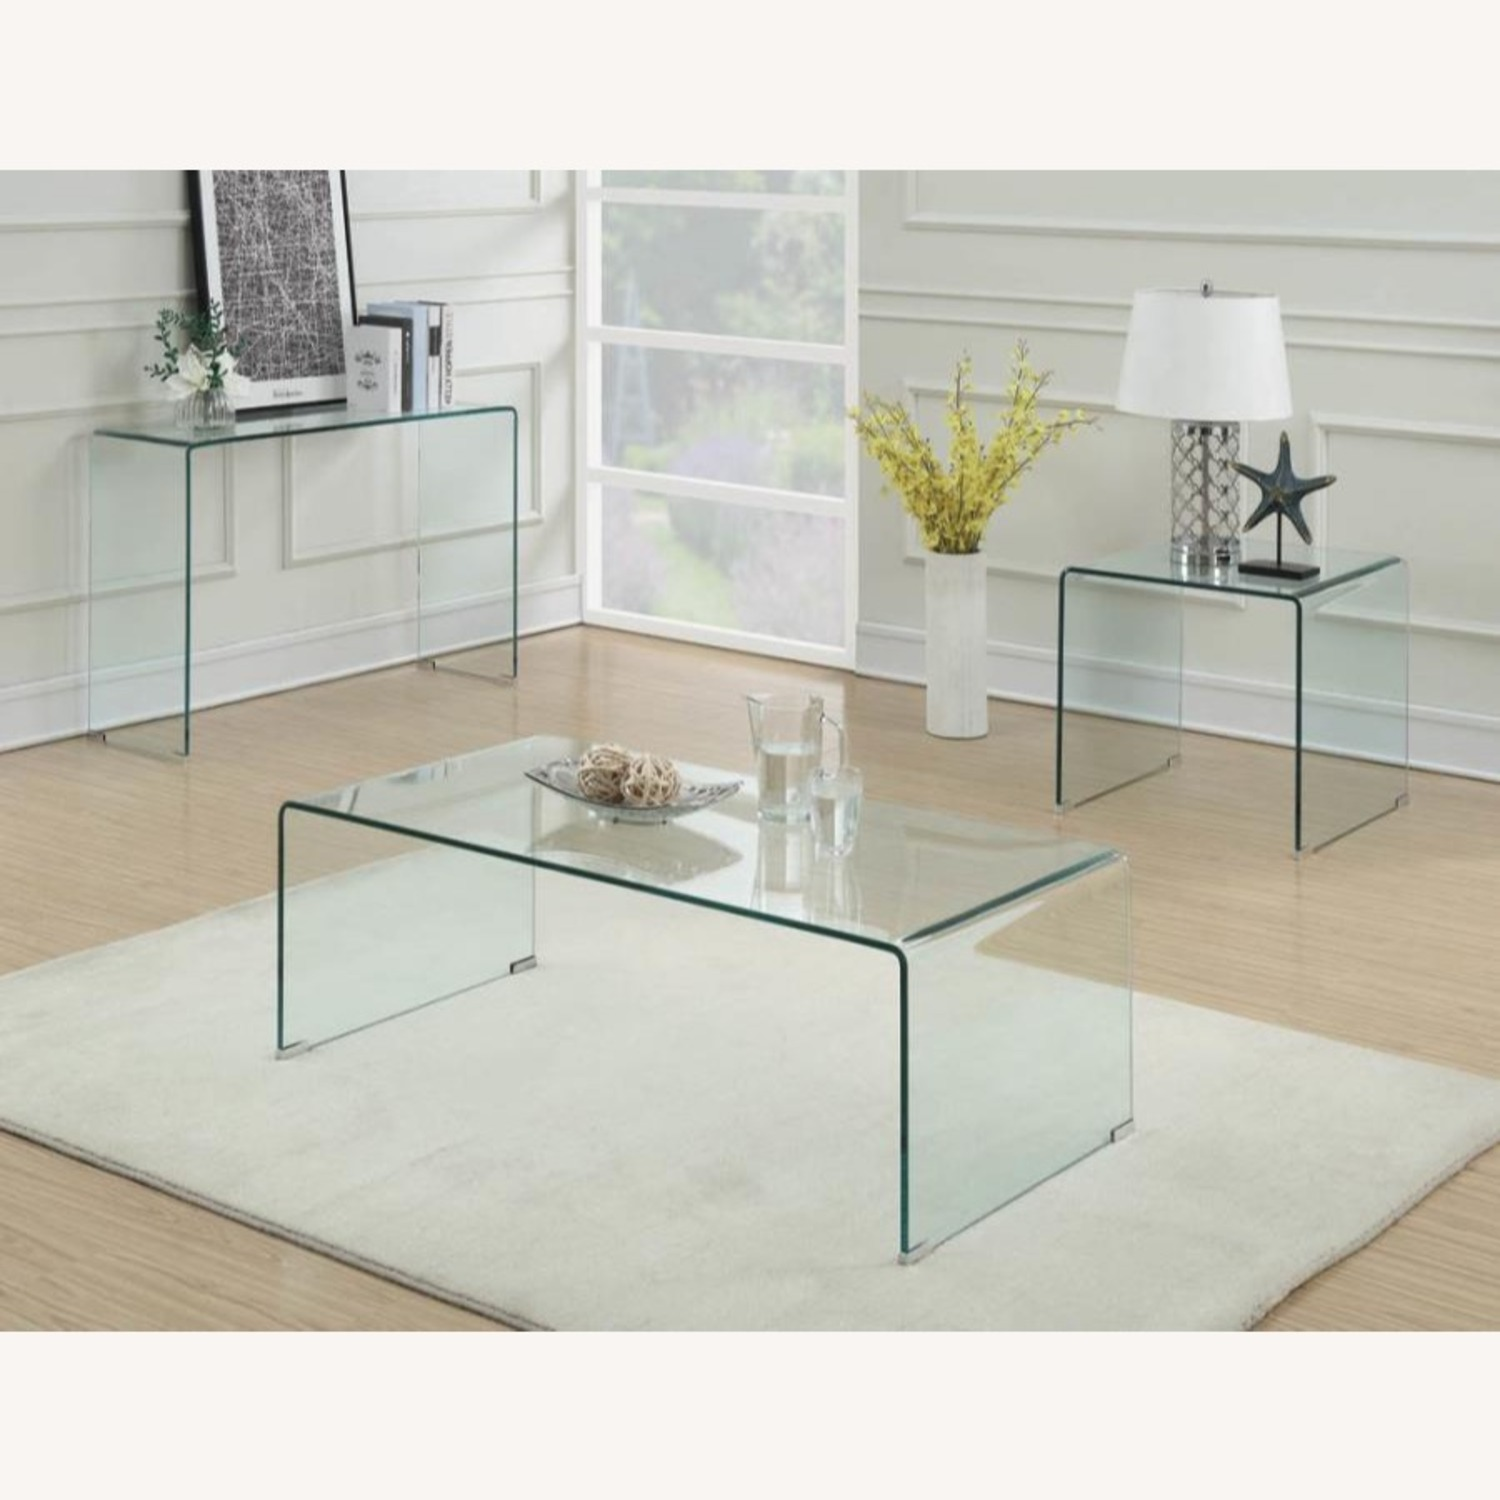 End Table In A Clear Finish W/ Curved Top Edge - image-4